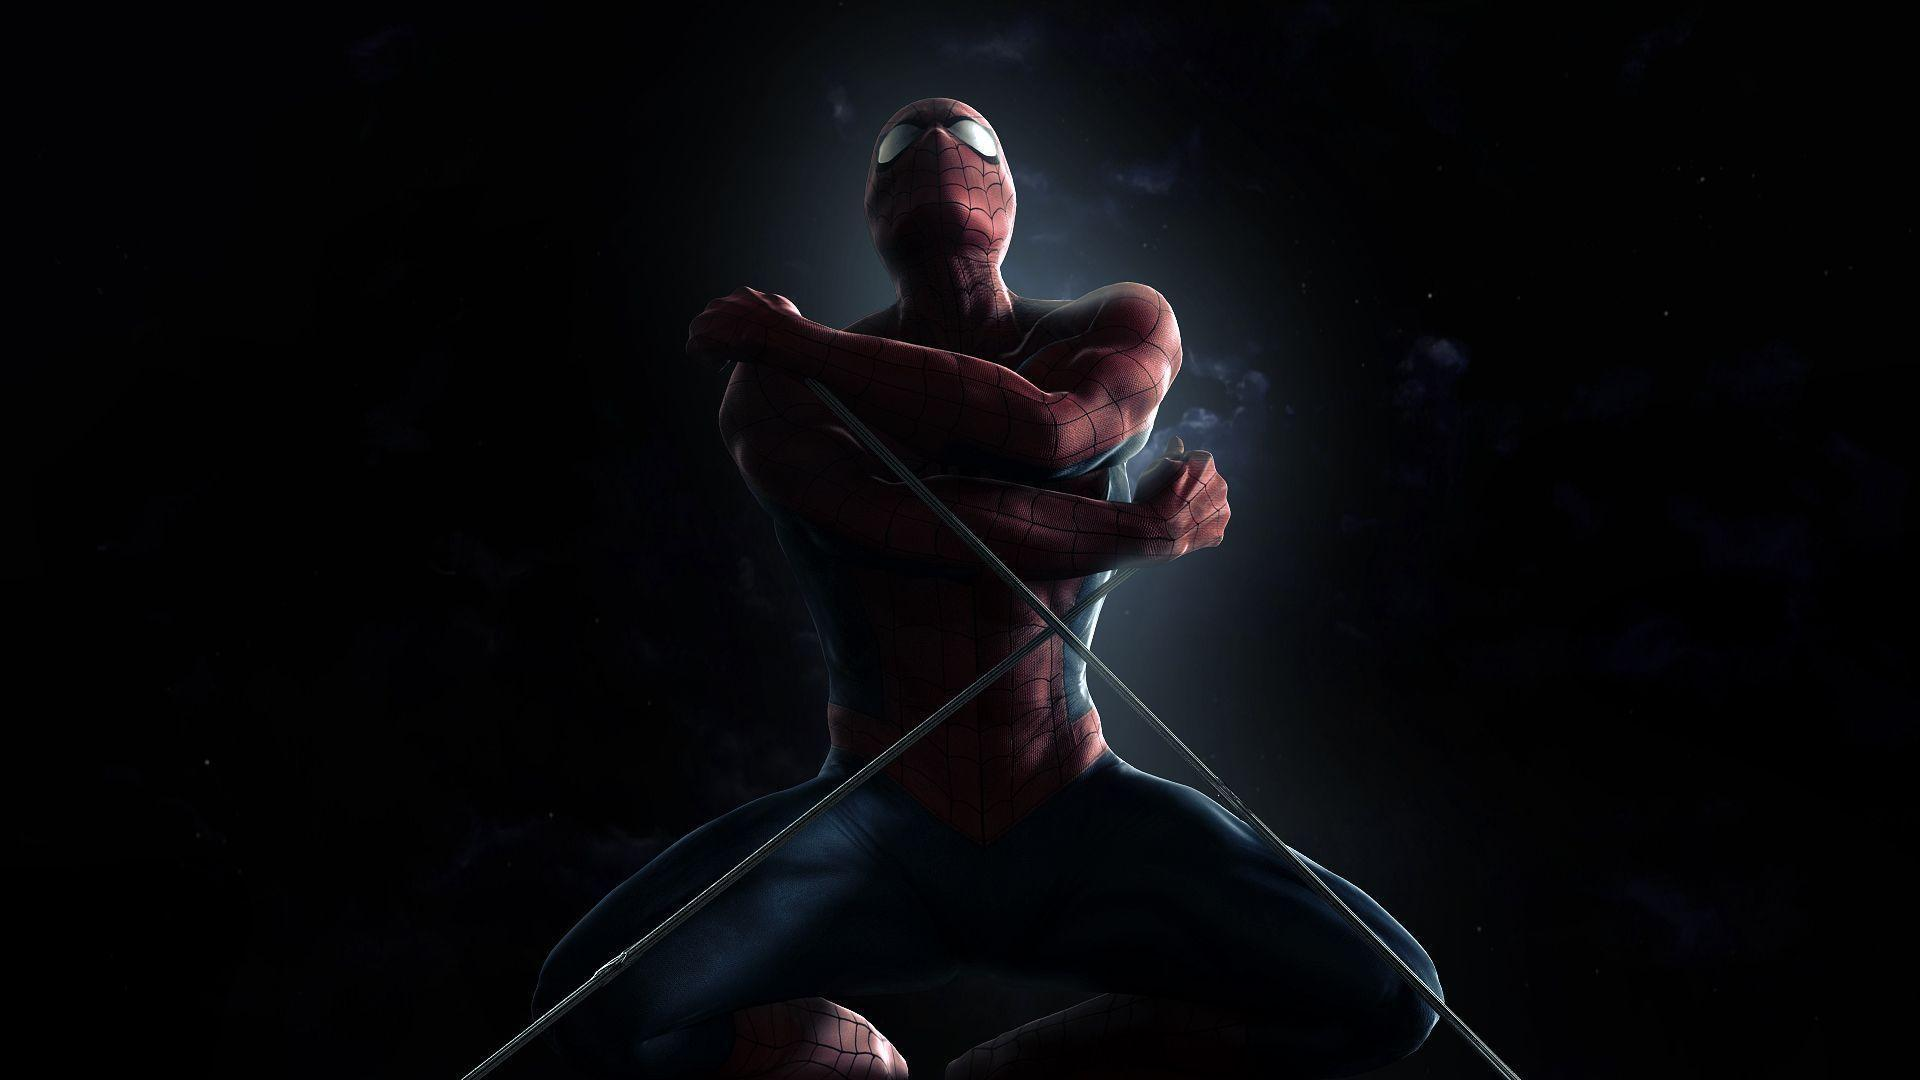 31 spiderman hd wallpaper - photo #6